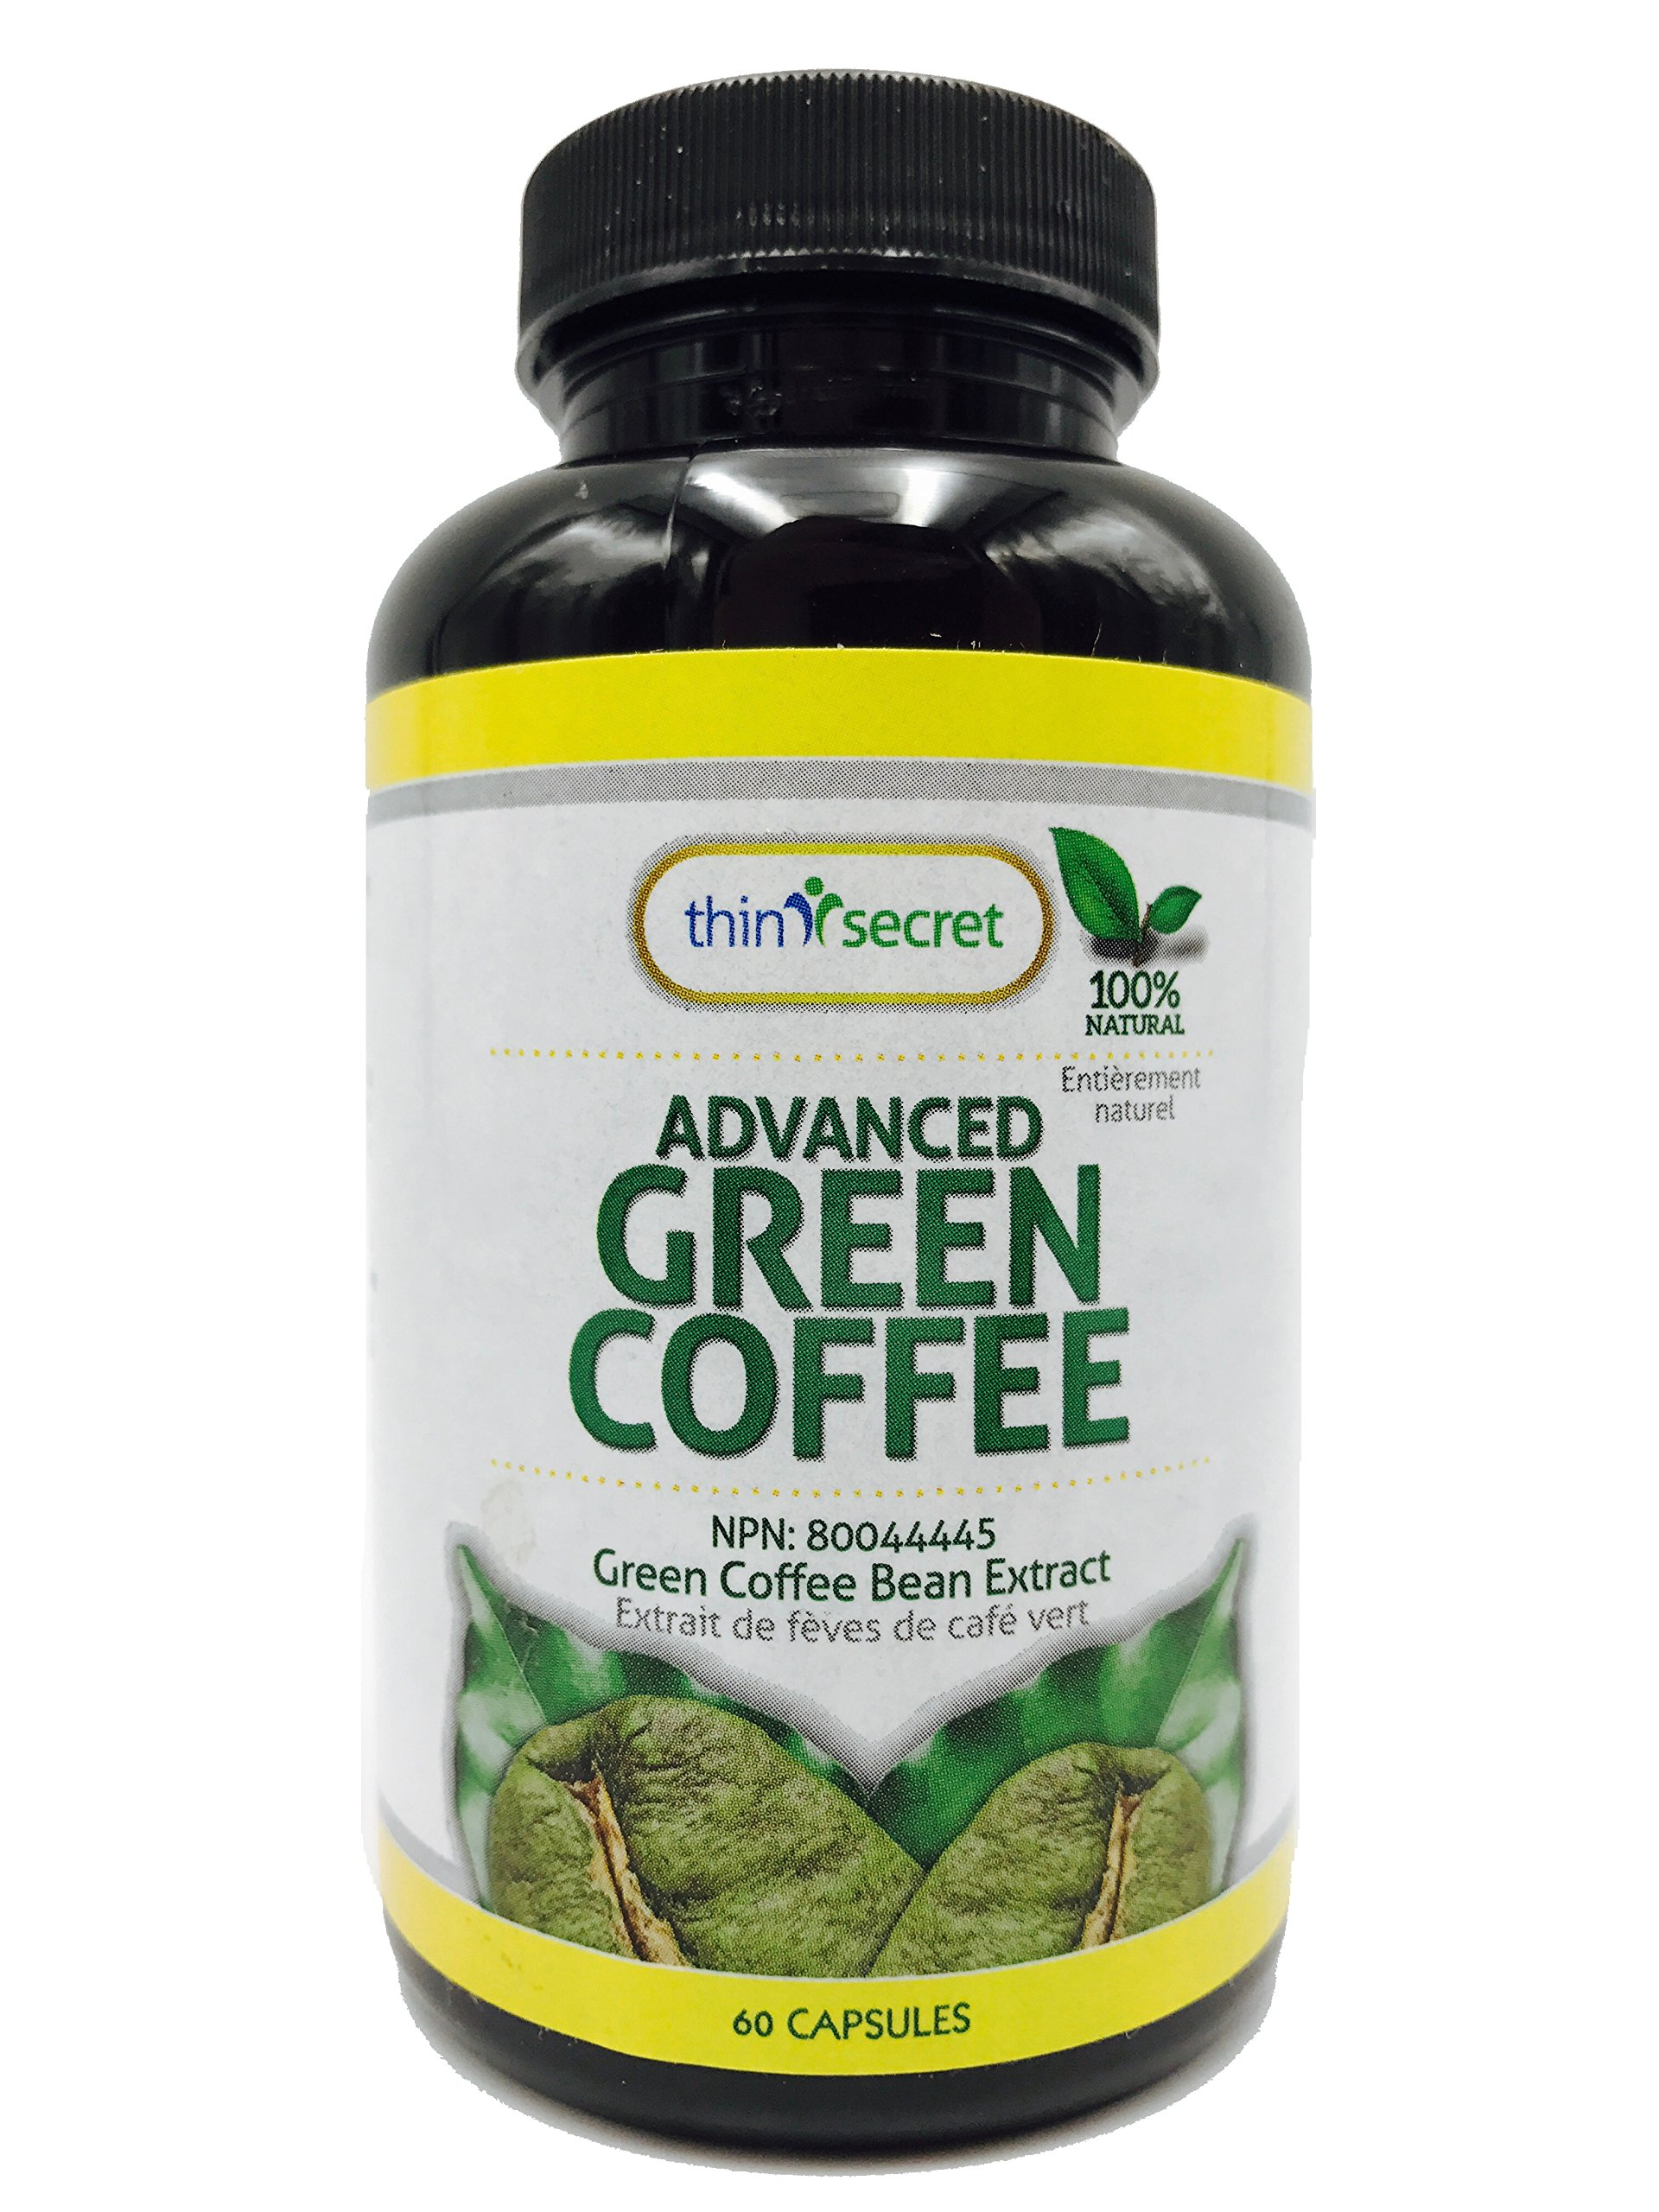 Thin Secret- Advanced Green Coffee-Premium Weight Management Formula-100% Natural-Potent Weight Loss Pills for Men and Women - Metabolism Booster - Powerful Antioxidant 60 Capsules